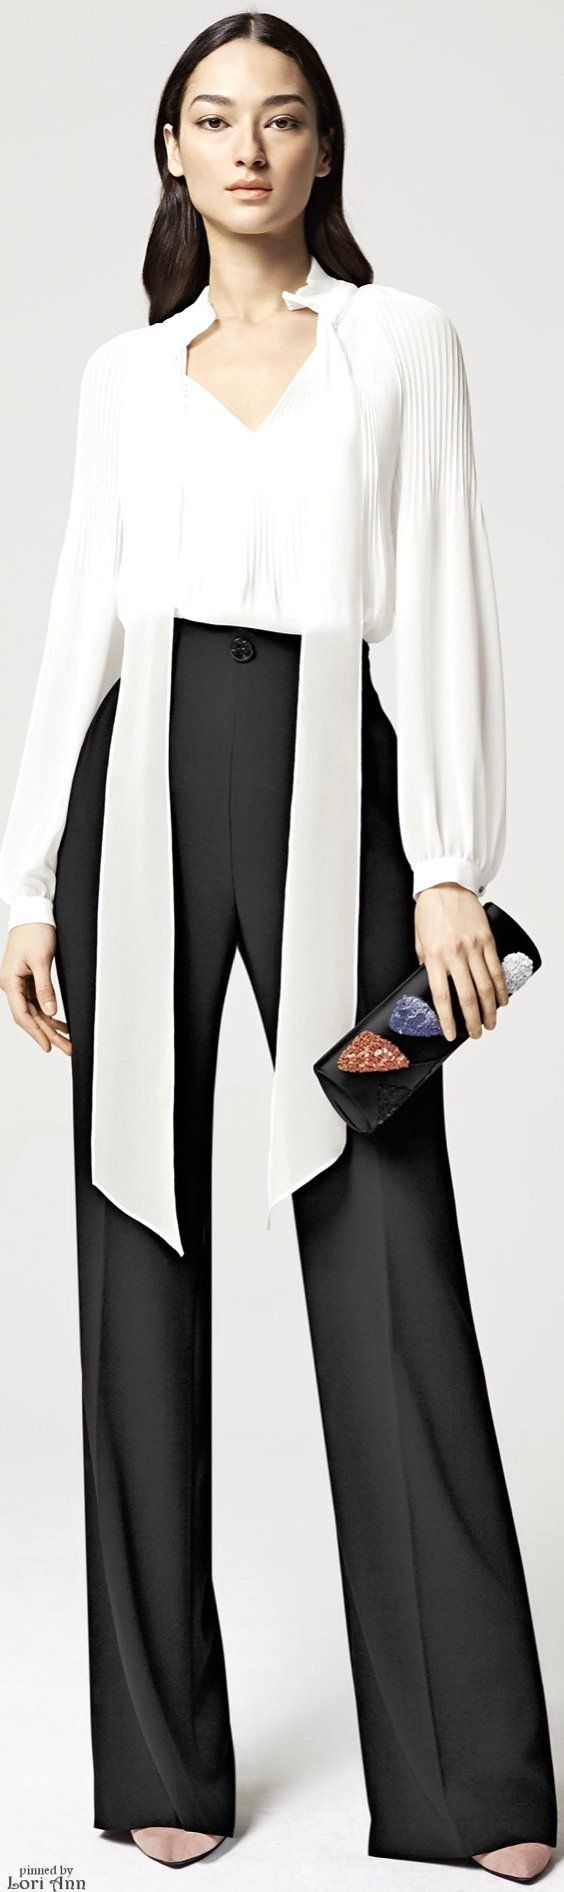 Escada Resort 2016 women fashion outfit clothing style apparel @RORESS closet ideas